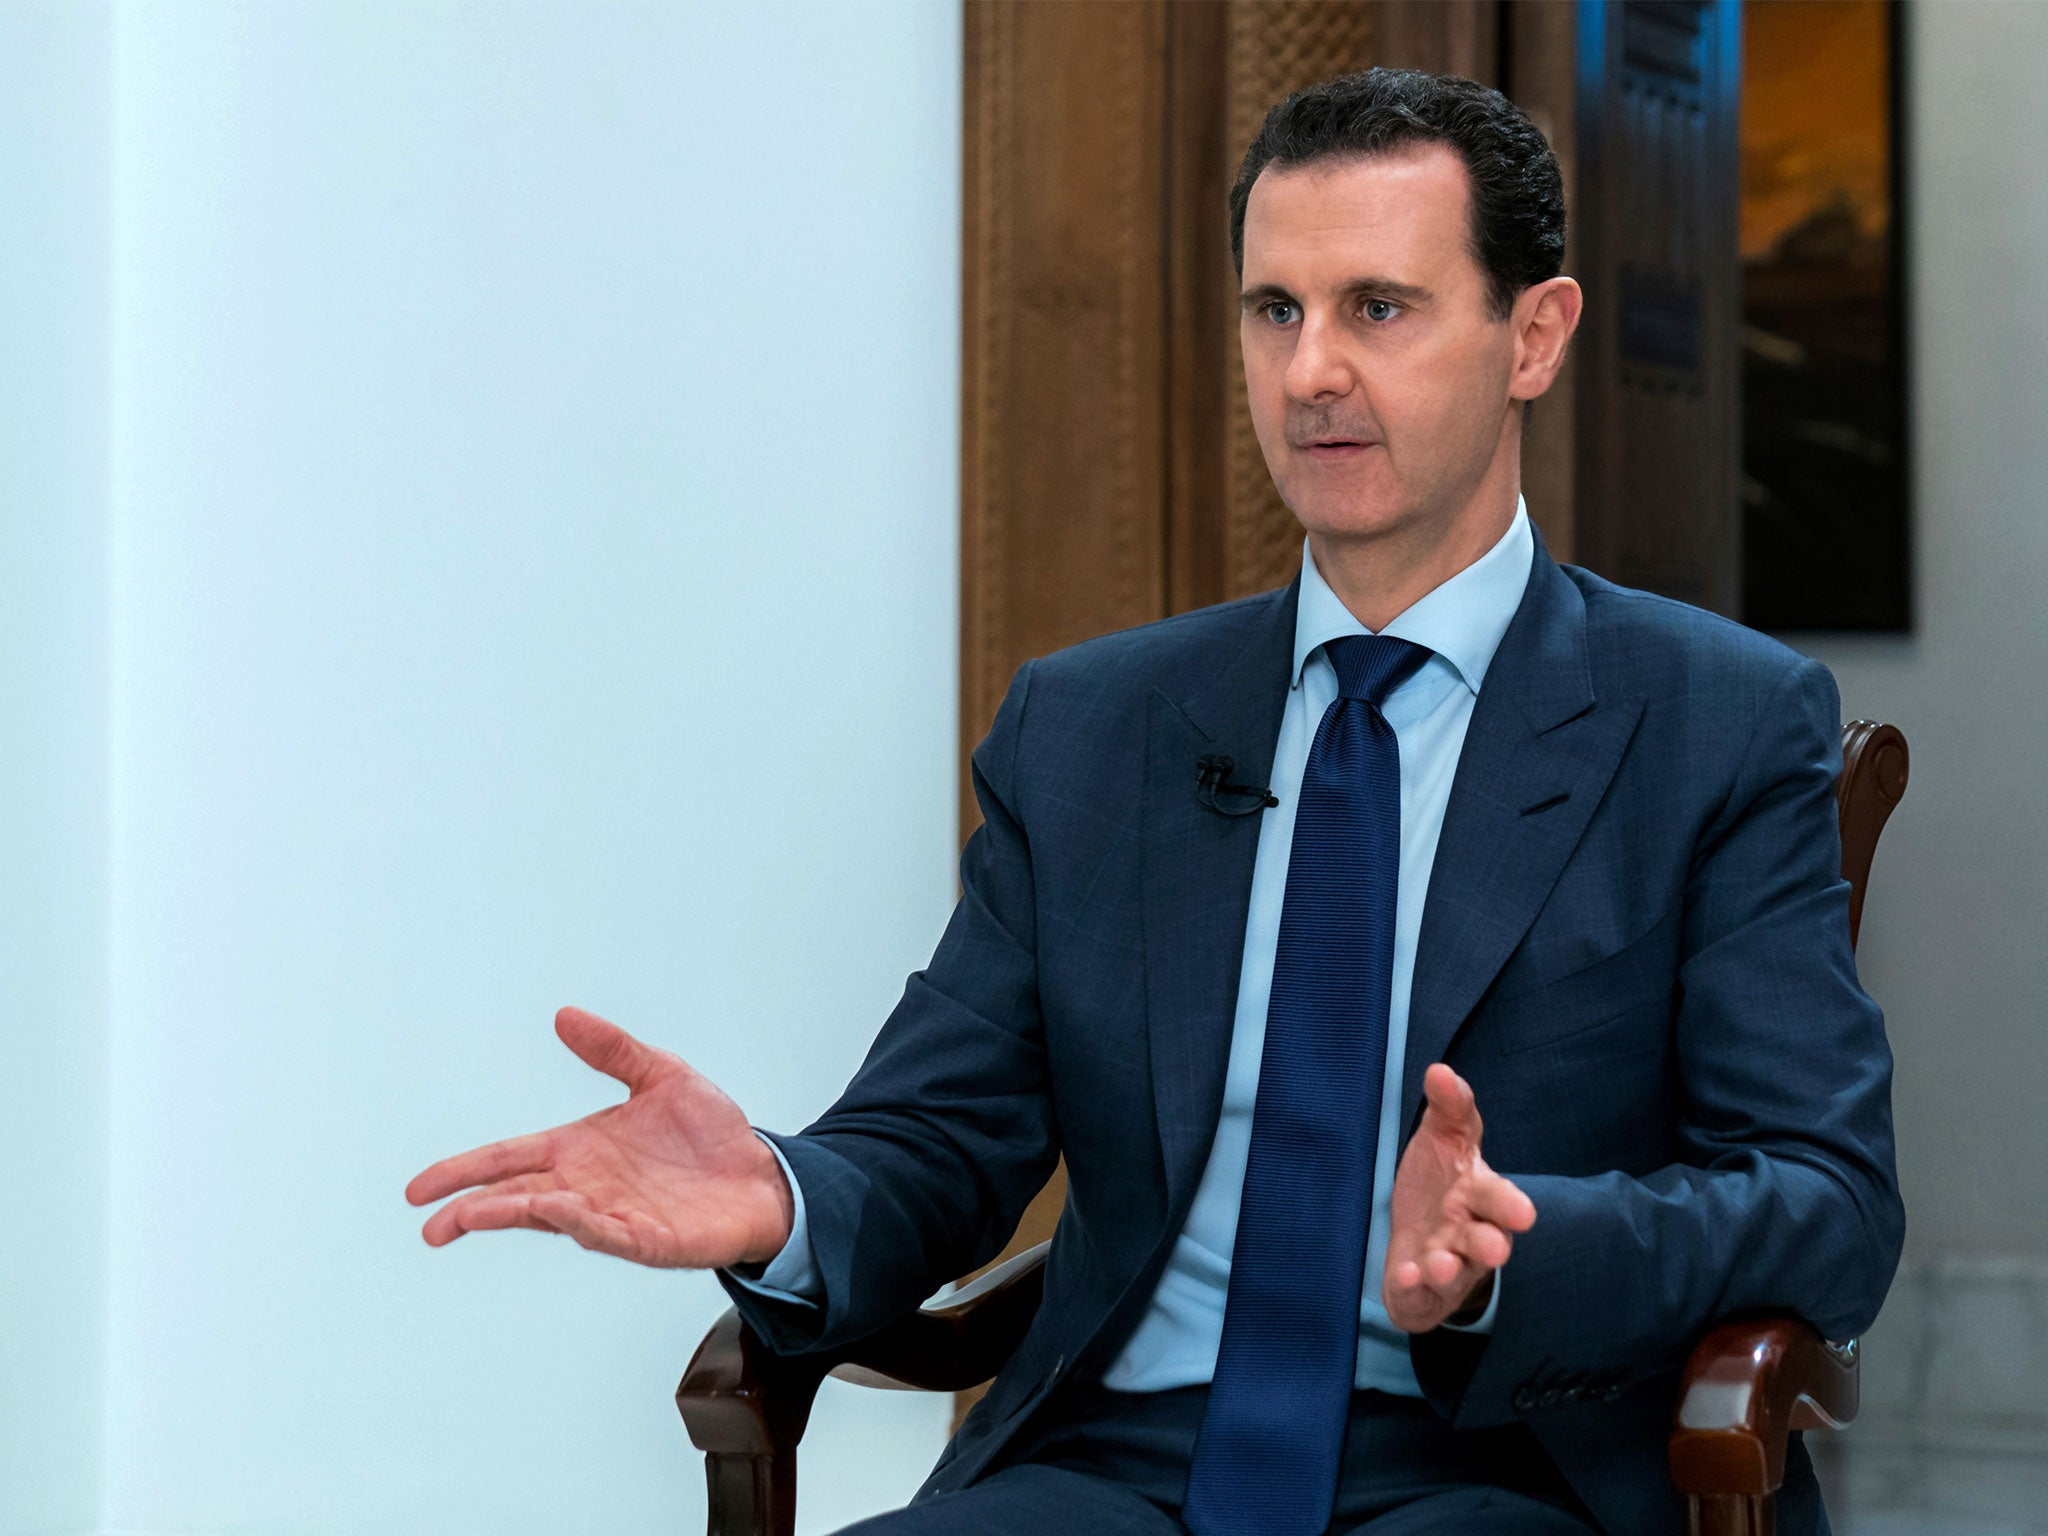 Assad accuses West of fuelling Syrian war in hopes of toppling his regime